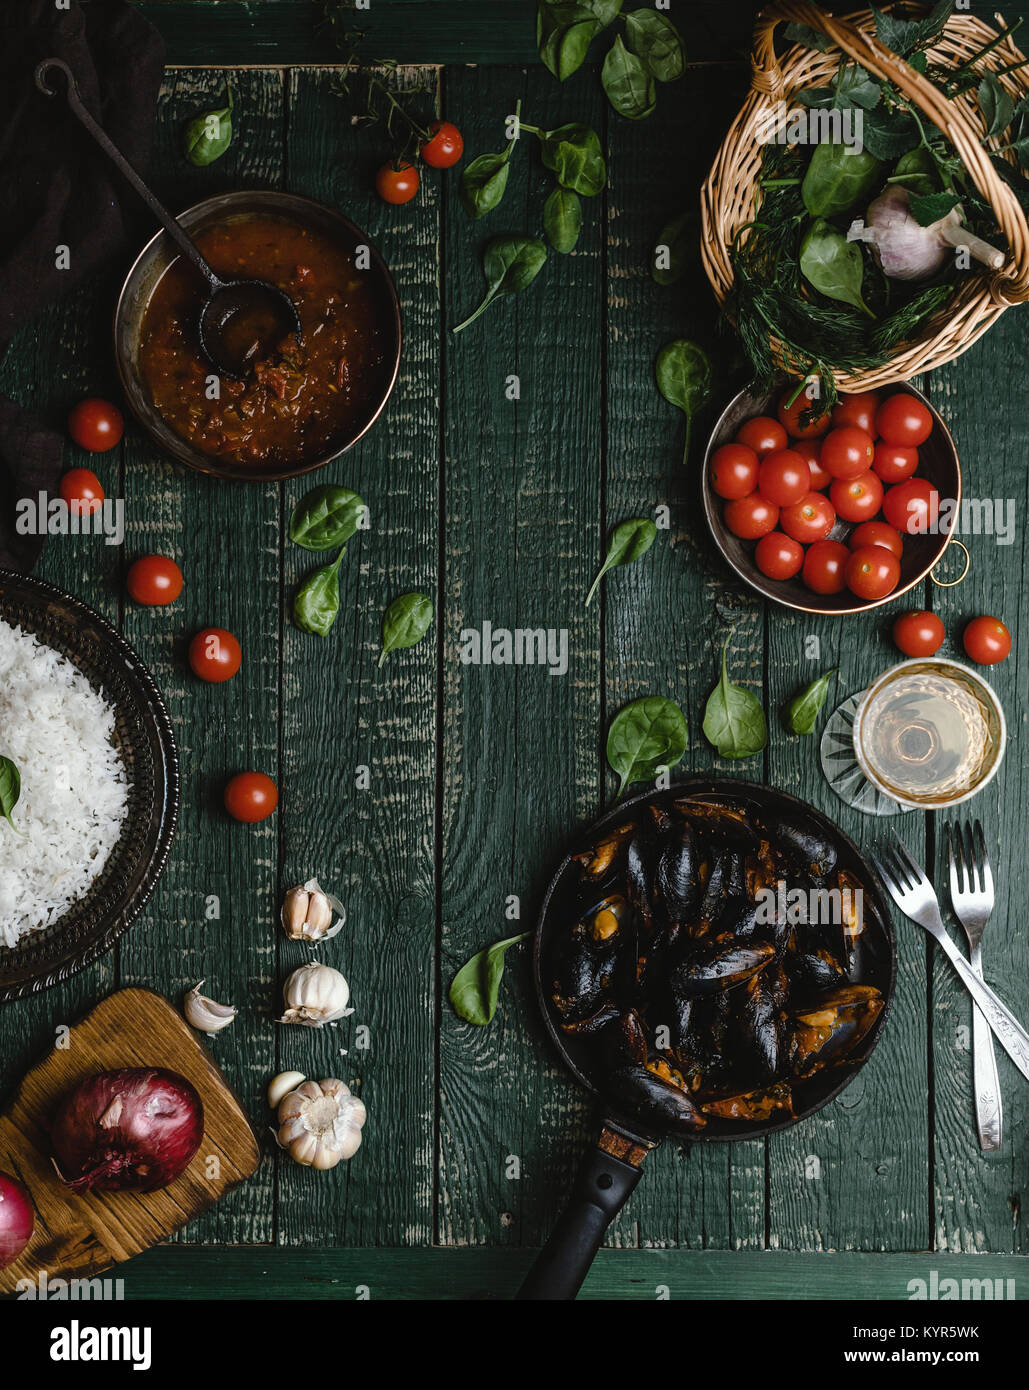 Top view of cooked mussels with shells served in pan with tomatoes, herbs and wine on rustic table - Stock Image